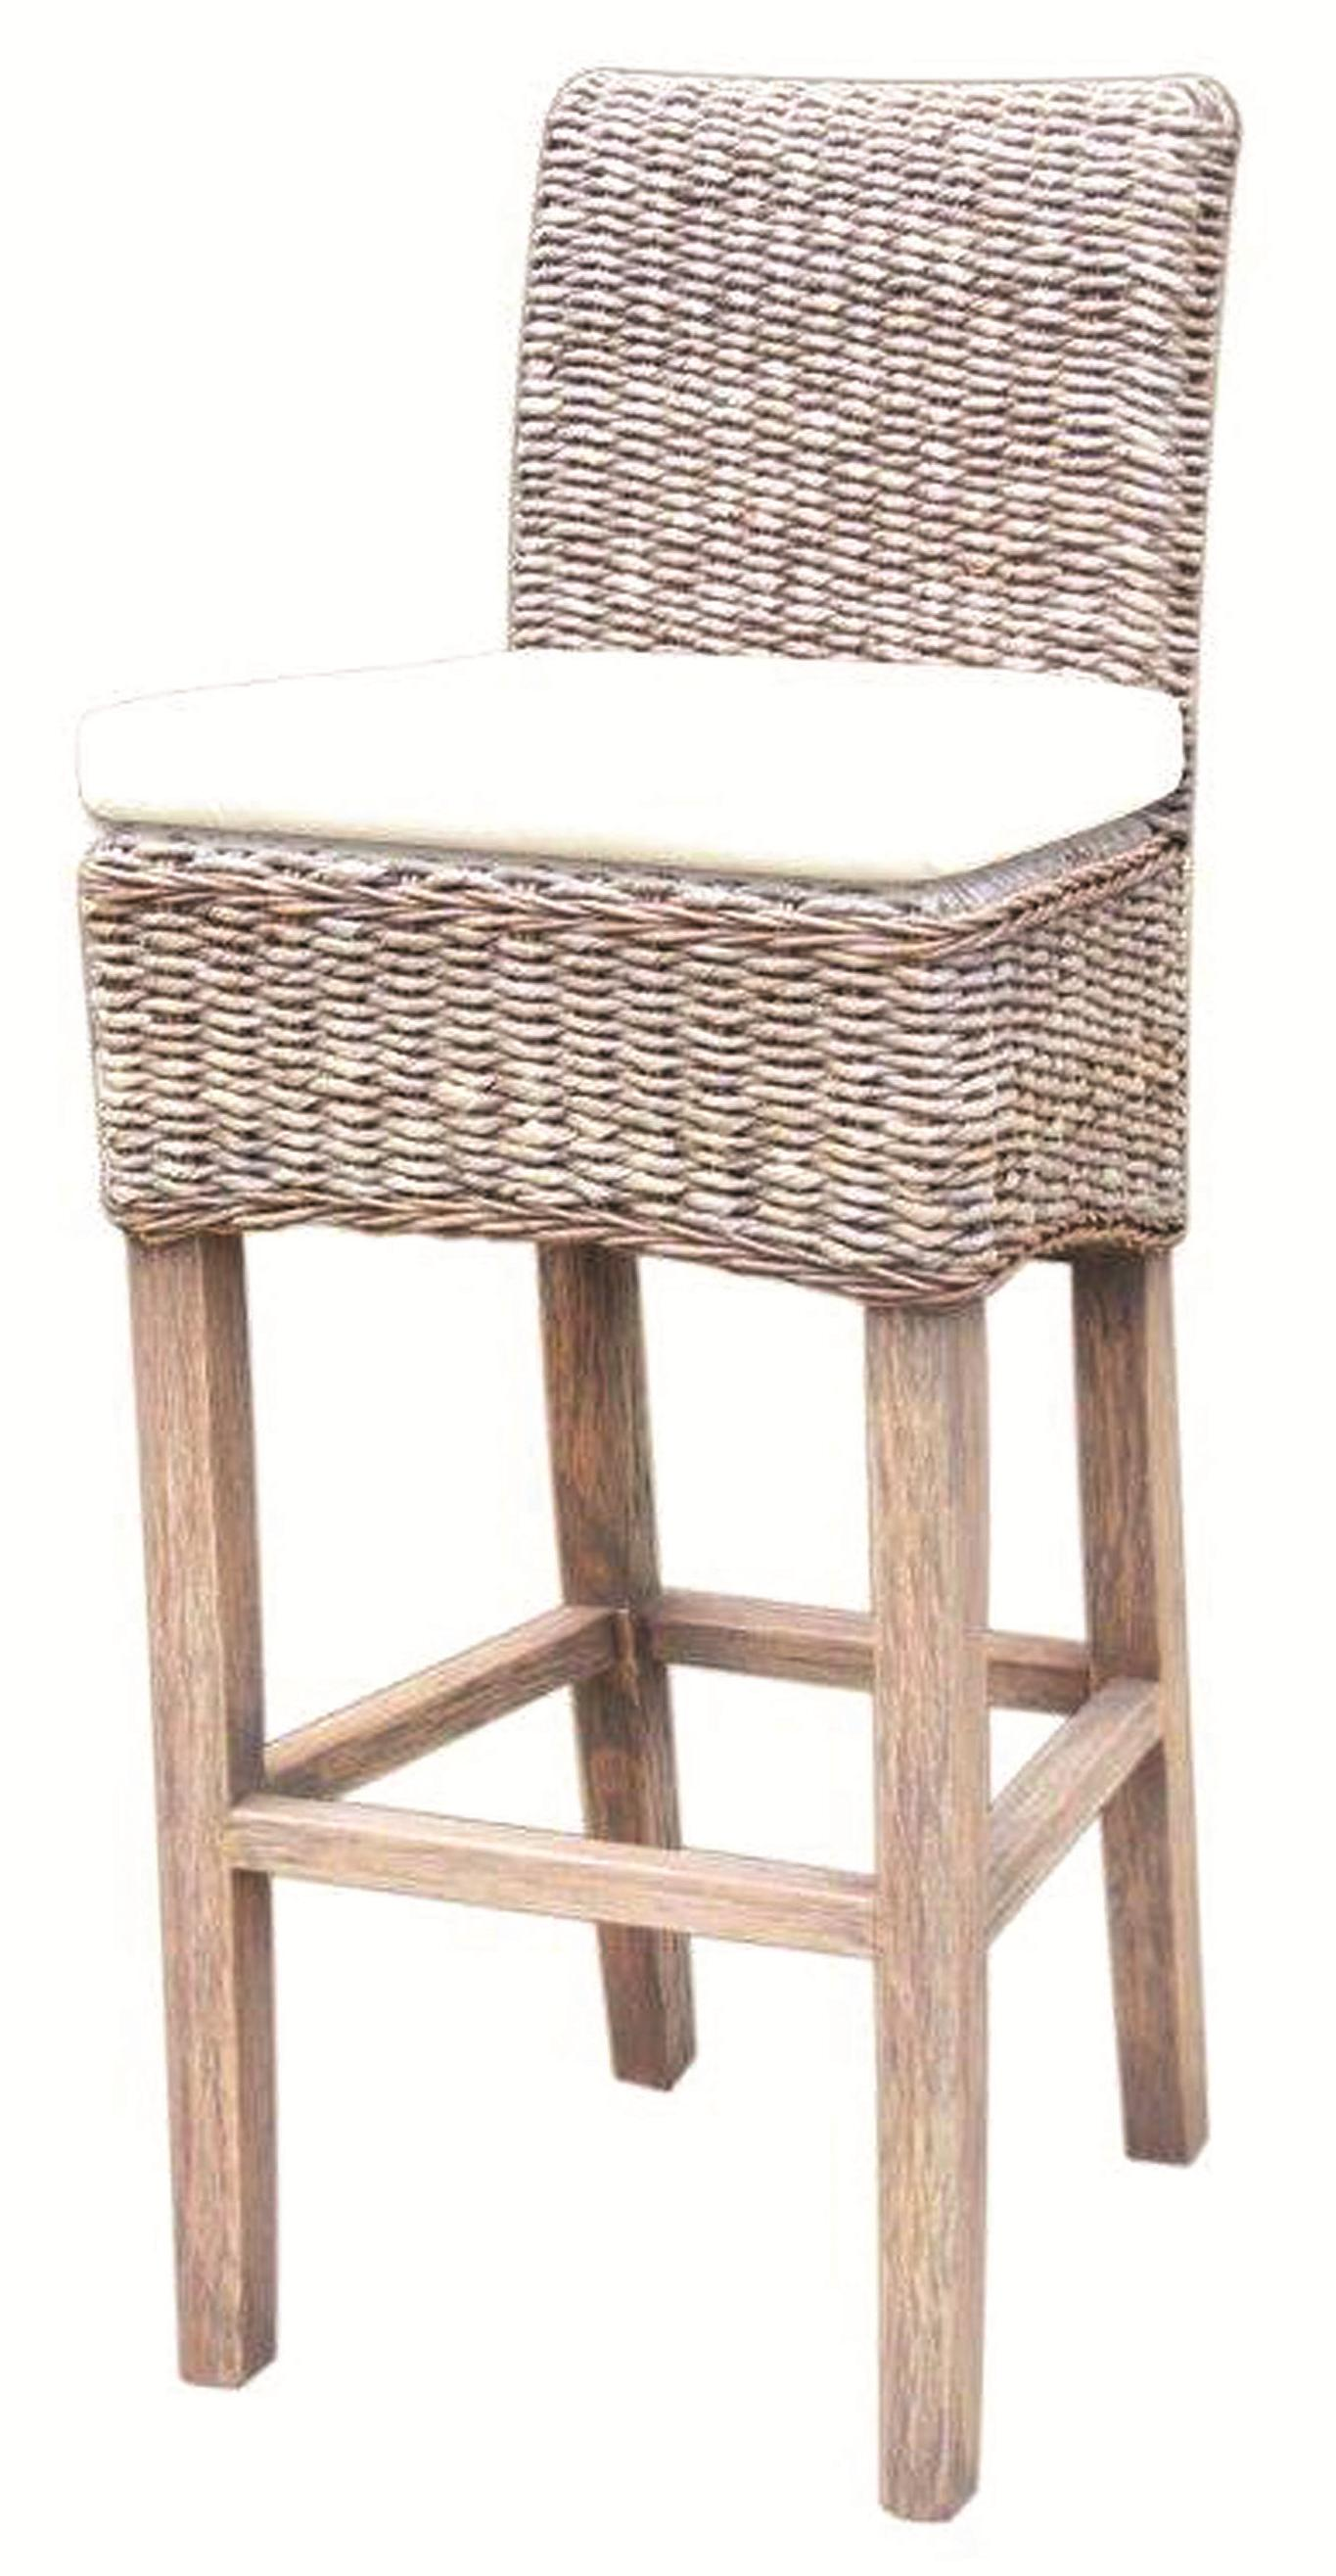 Four Hands Grass Roots Banana Leaf Barstool - Item Number: JCHR-B1CSG-GRY